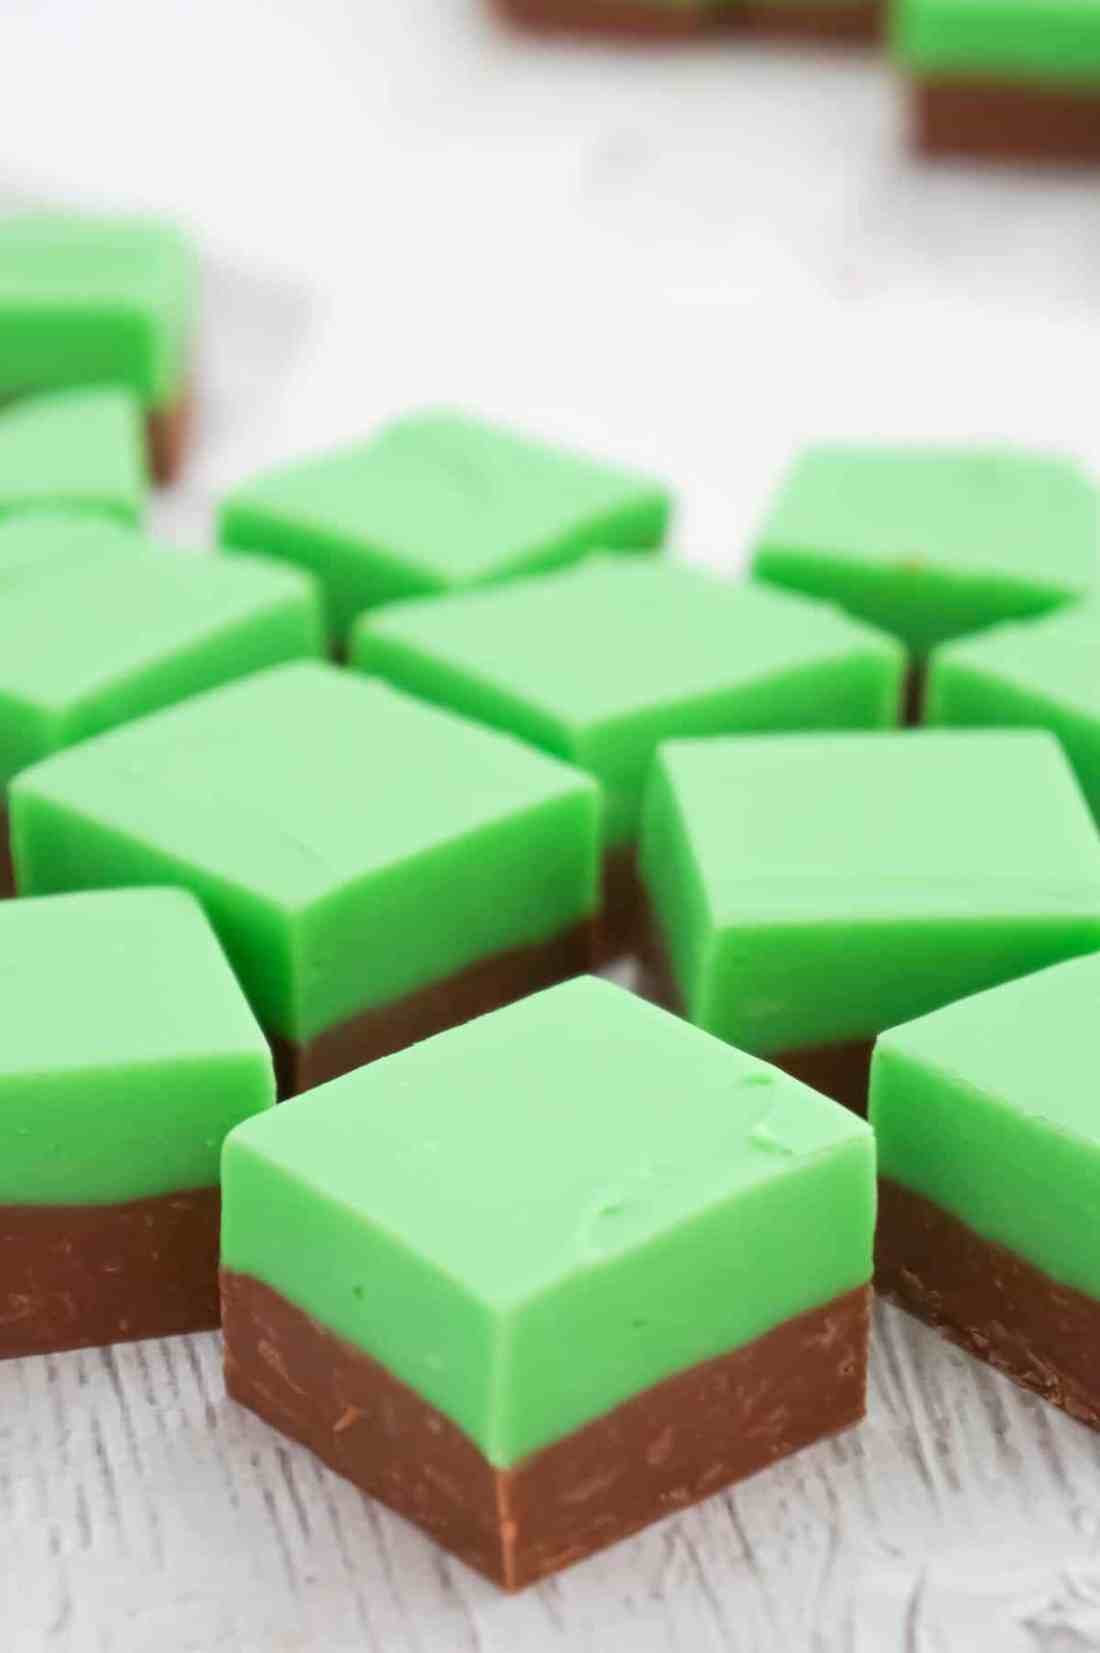 Mint Chocolate Fudge is an easy microwave fudge recipe using sweetened condensed milk, milk chocolate chips, white chocolate chips, green food colouring and mint extract.